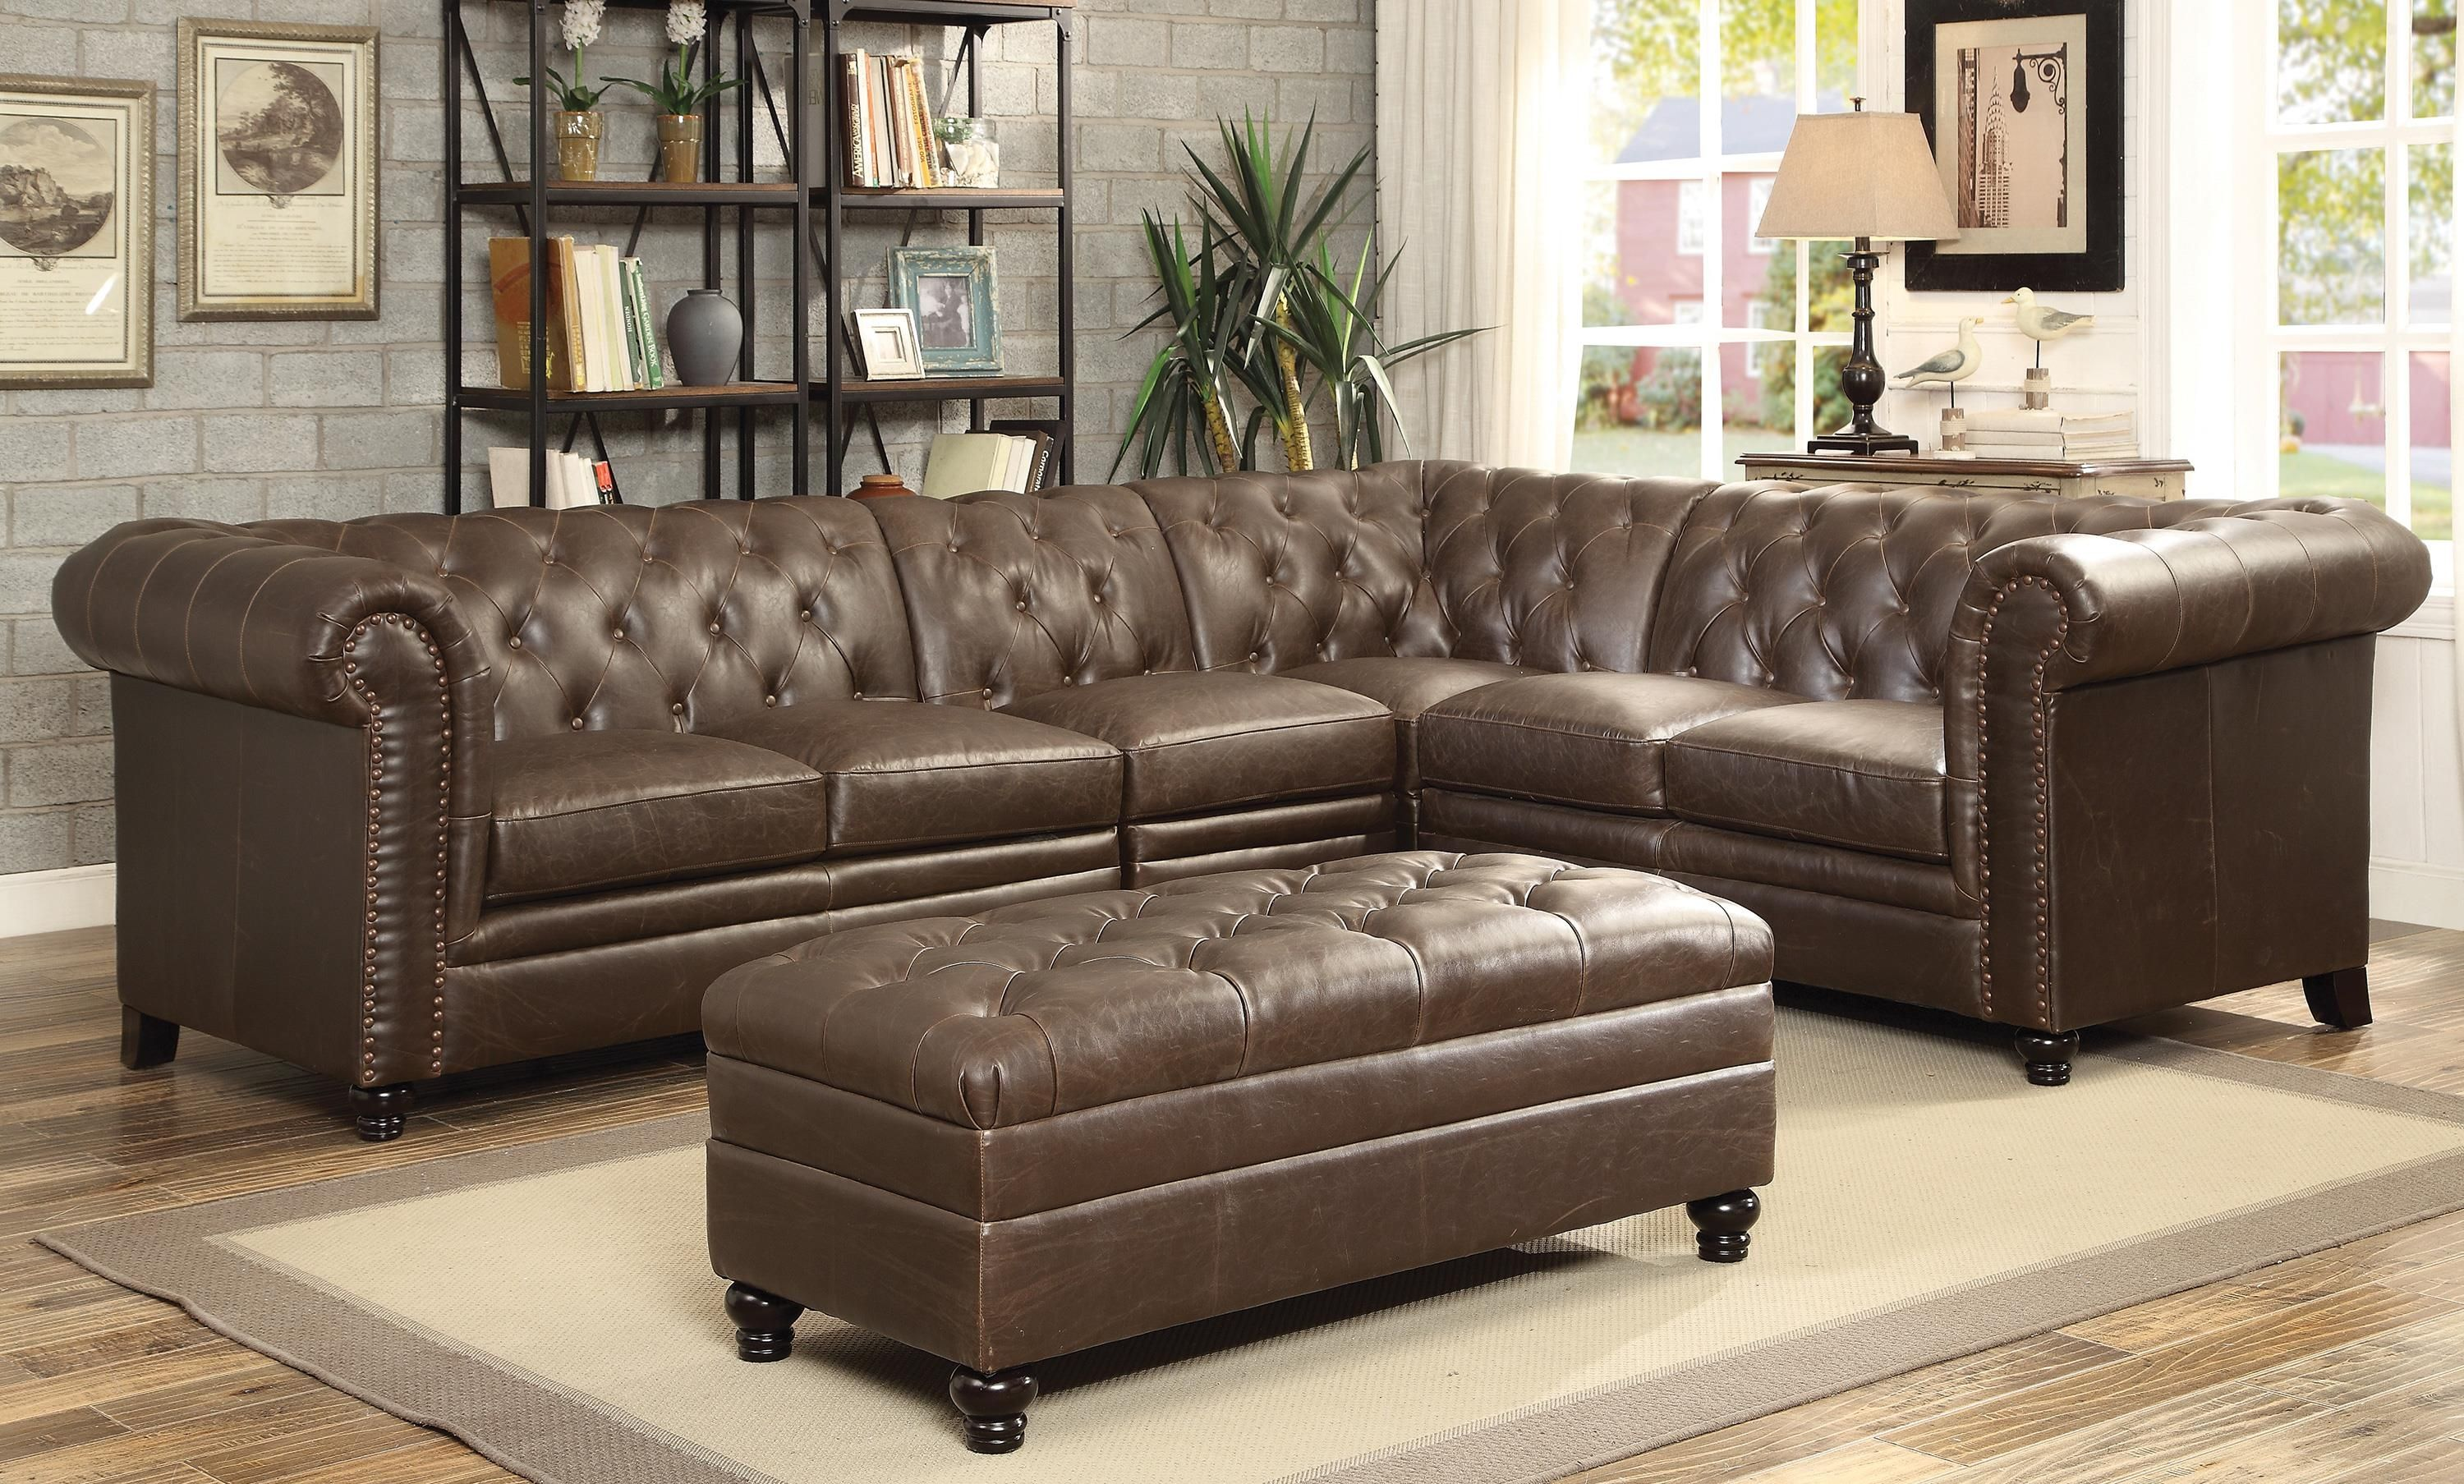 Tufted Leather Sectional Couch